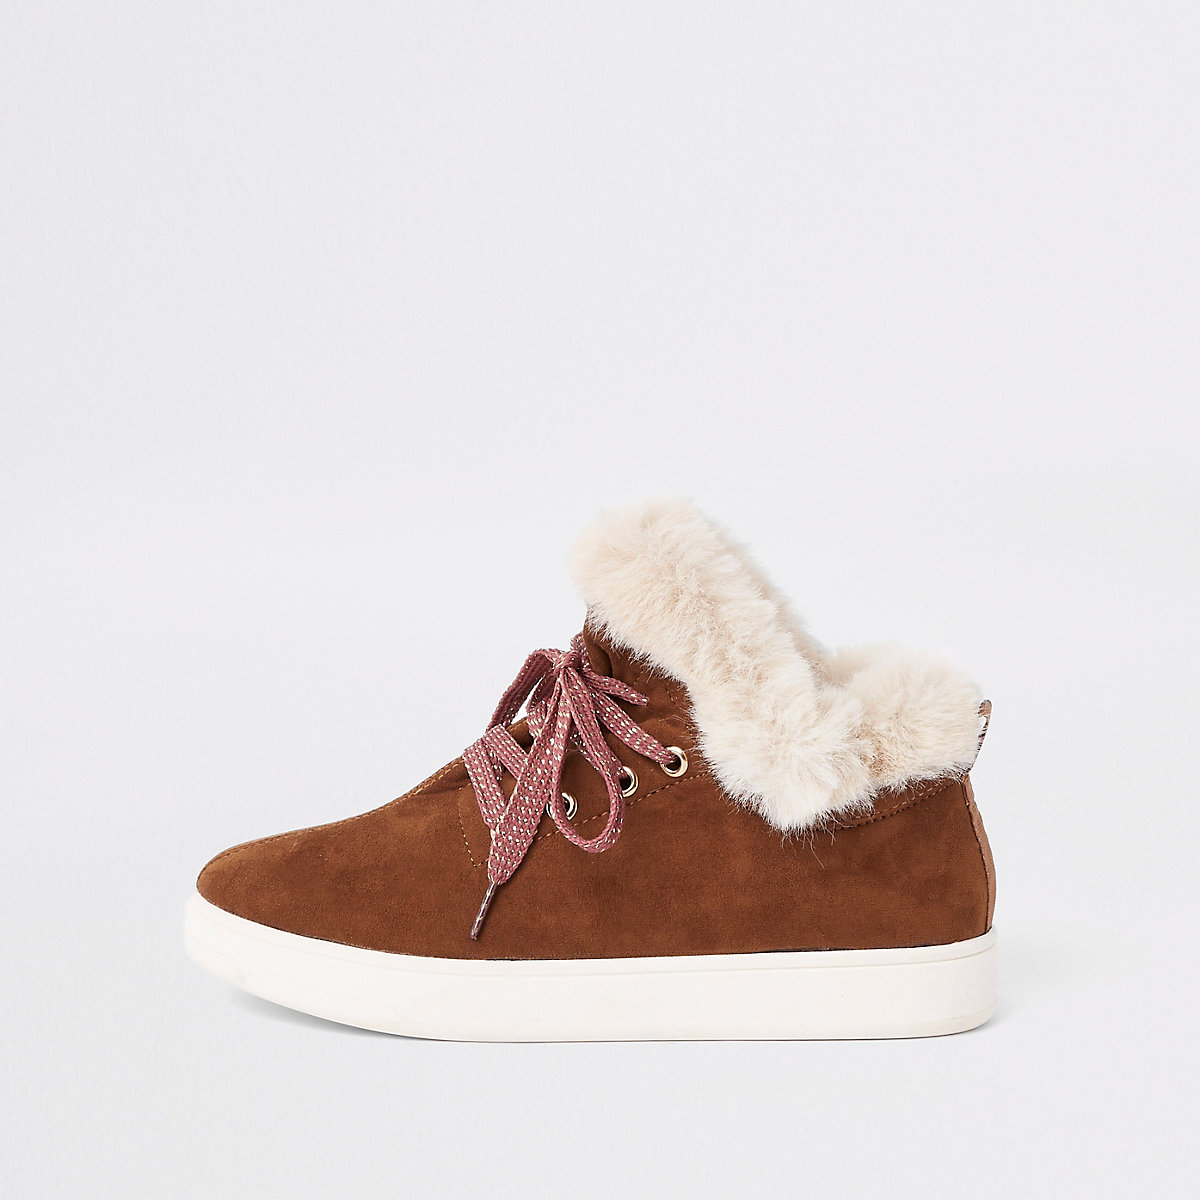 Brown lace-up faux fur lined sneakers